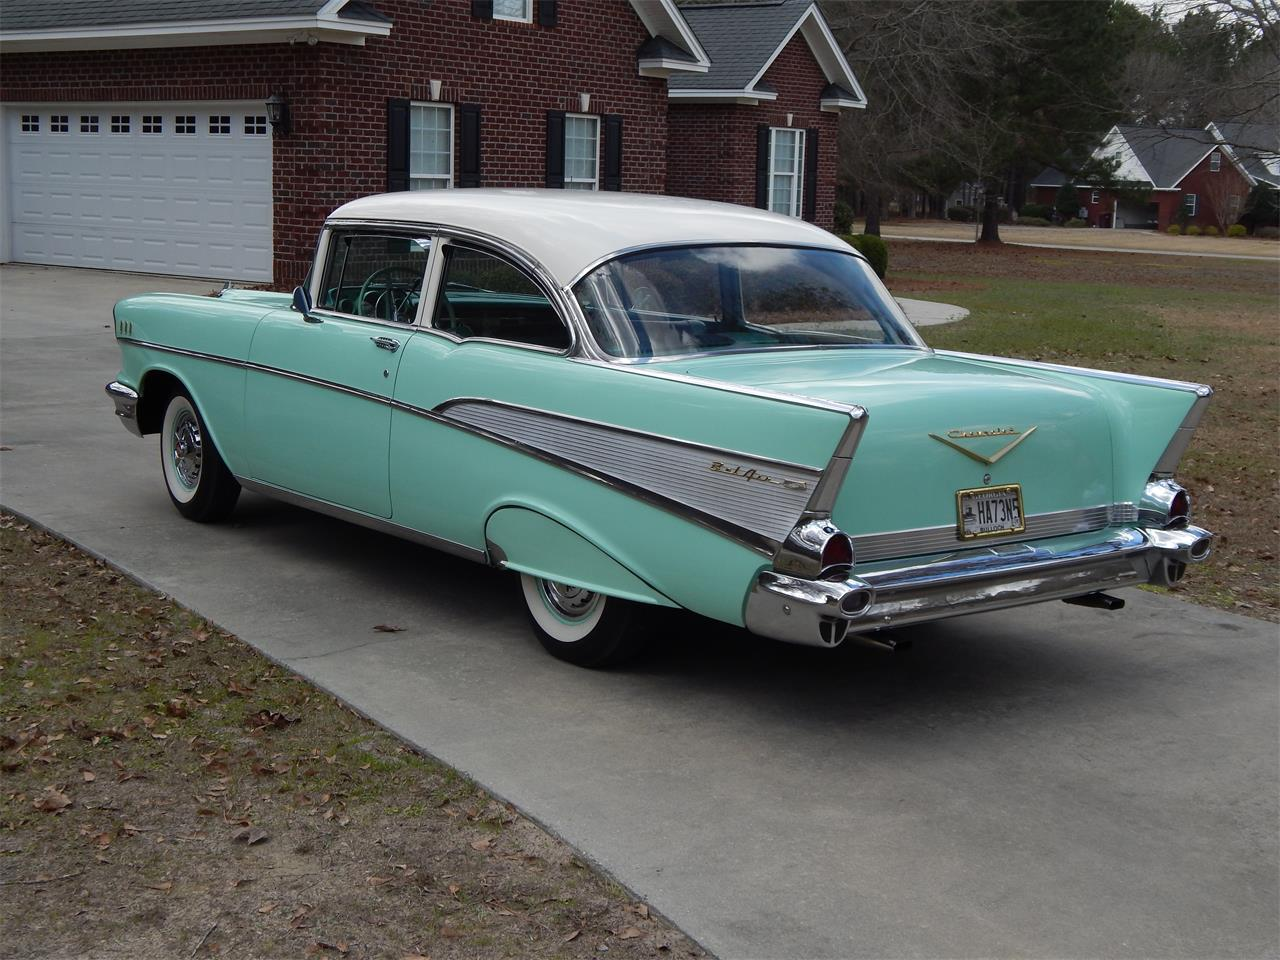 1957 Chevrolet Bel Air for sale in Online, Online Auction – photo 3